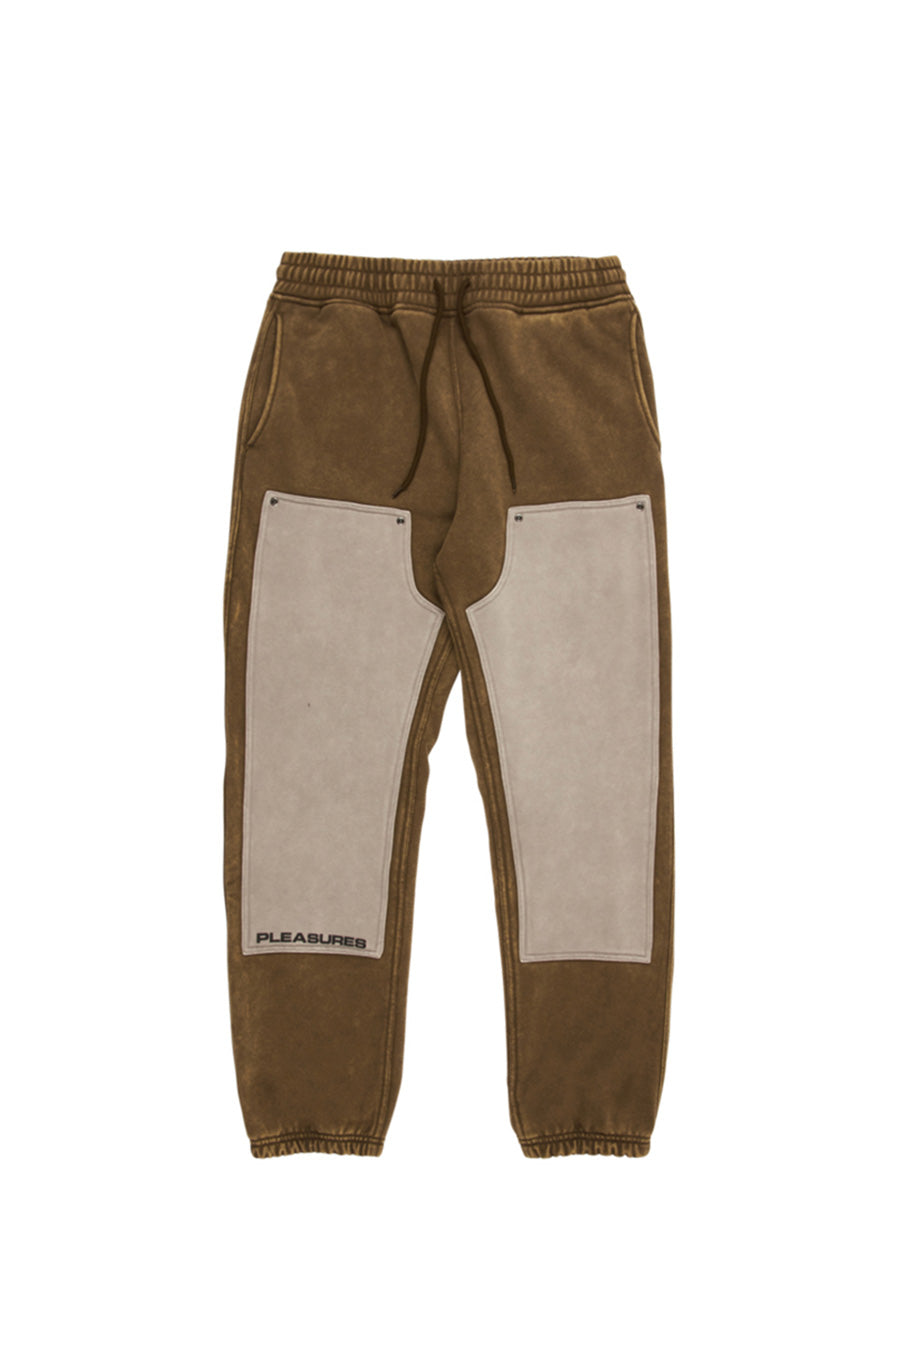 Pleasures - Olive Burnout Dyed Sweatpants | 1032 SPACE